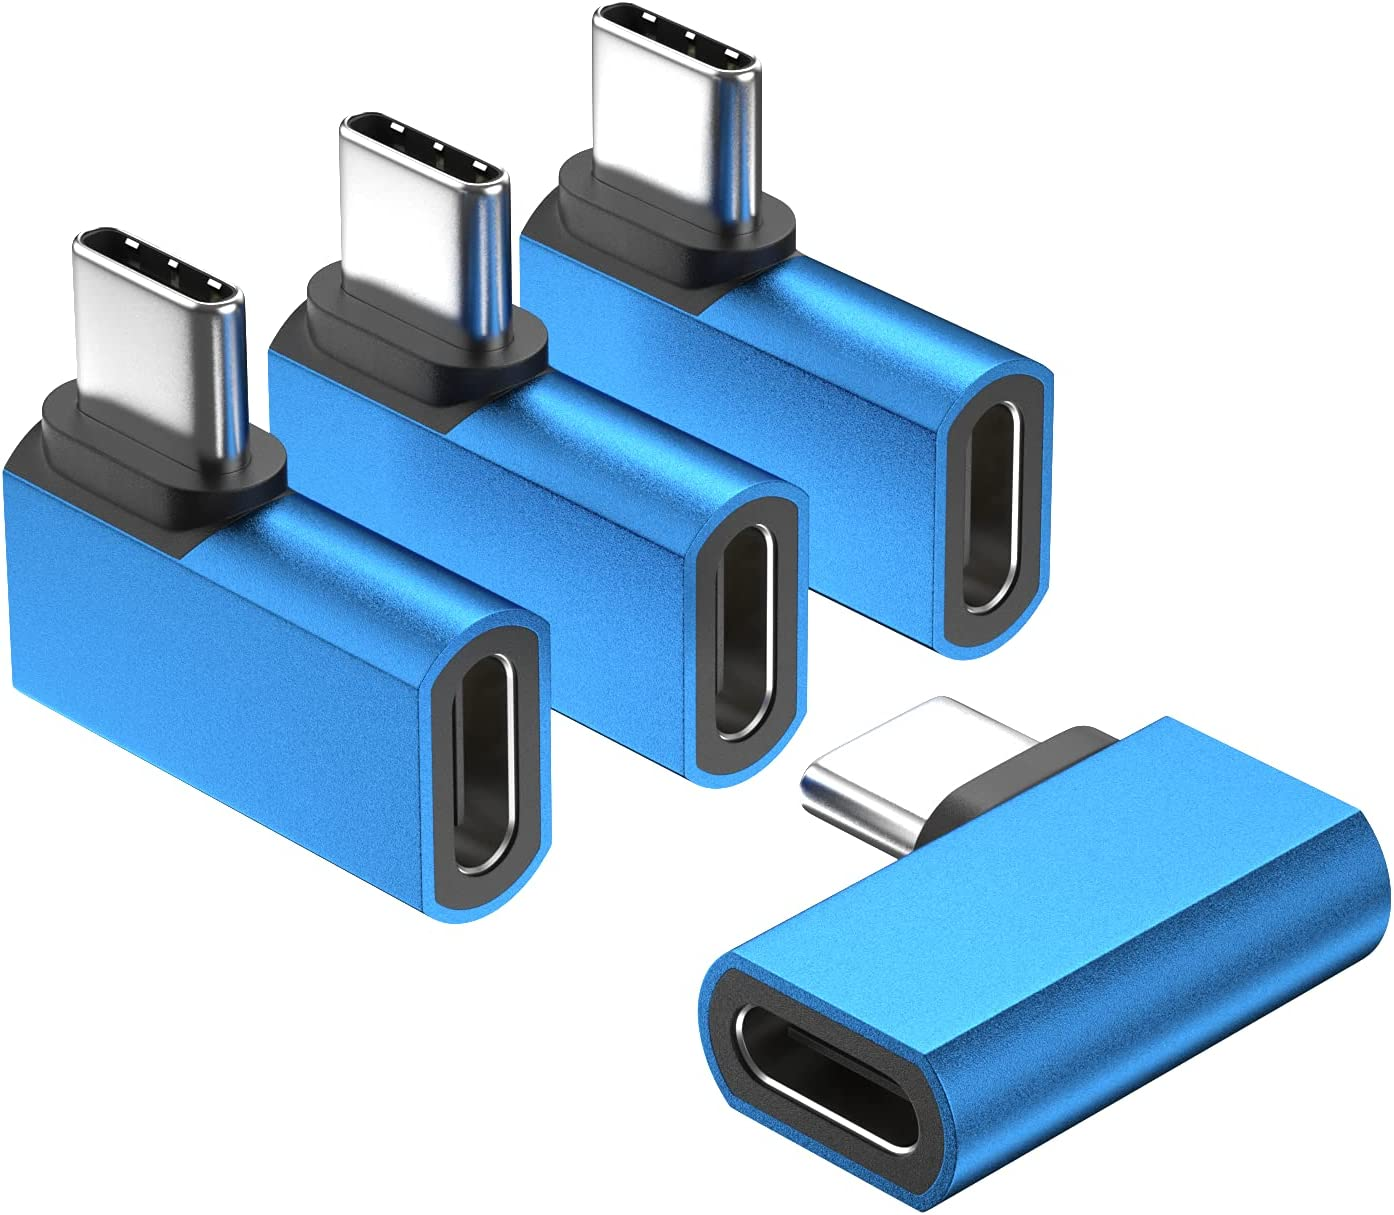 Right Angle USB C Extension Adapter, UseBean(4-Pack) PD 100W 90 Degree USB Type C 3.1 Gen2 Male to Female Extender,Aluminum Alloy USB-C Extended Converter,for Lifeproof Otterbox Case,MacBook Pro,More